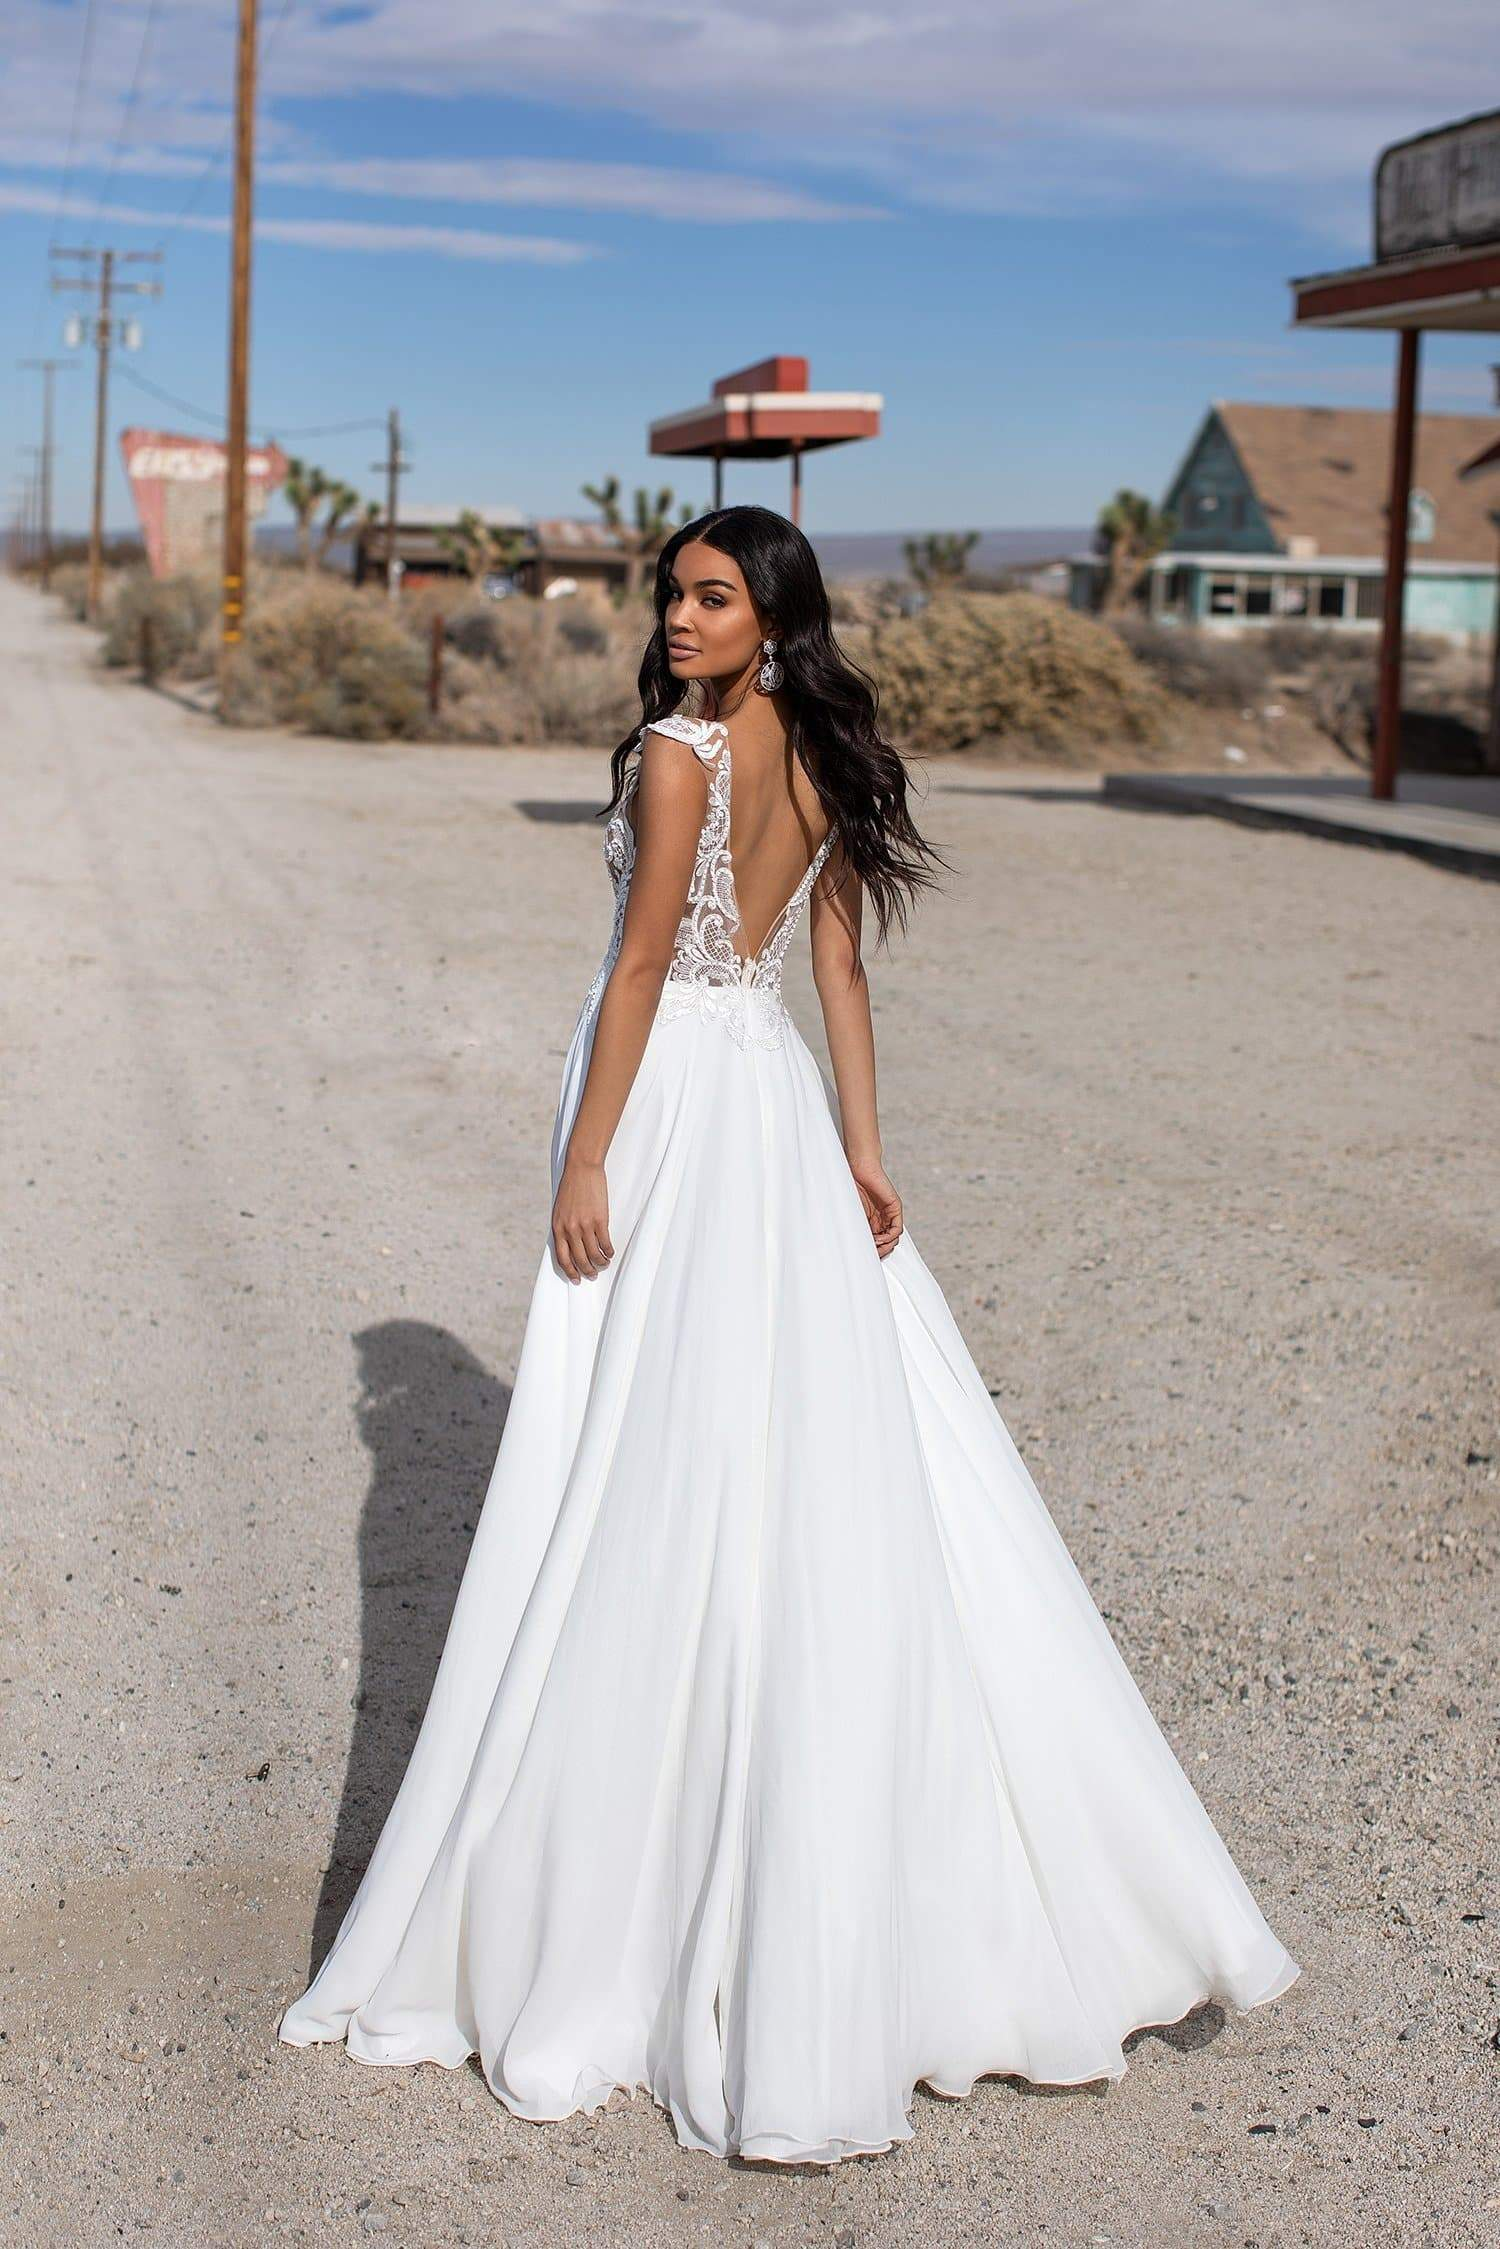 A&N Melis - White Boho Bridal Gown with Beaded Lace Bodice & Open Back